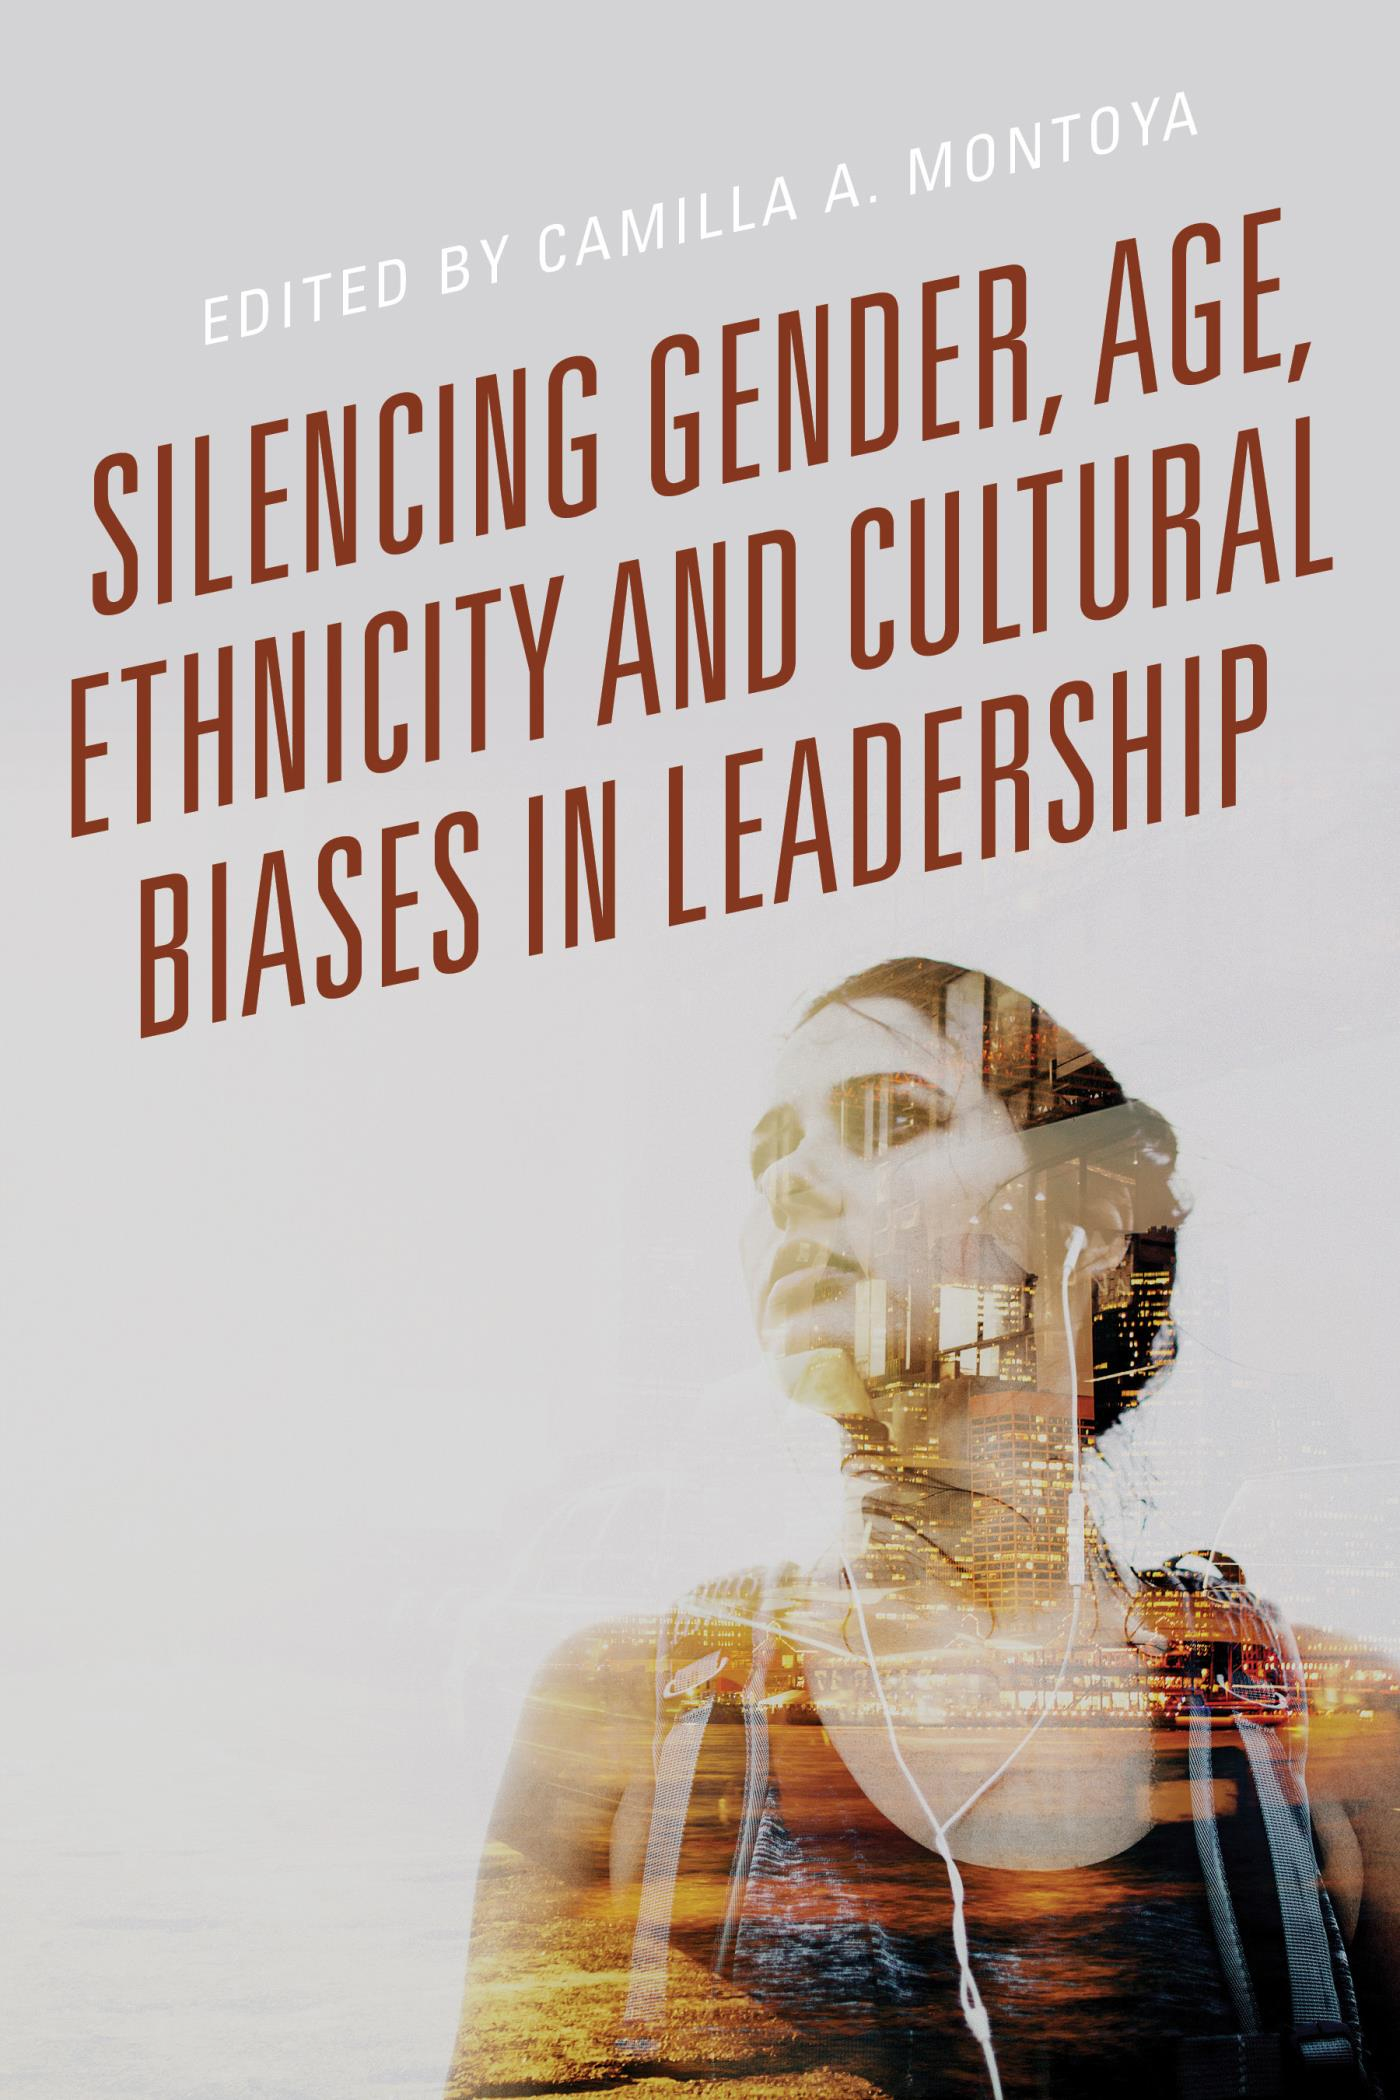 Silencing Gender, Age, Ethnicity and Cultural Biases in Leadership - 15-24.99